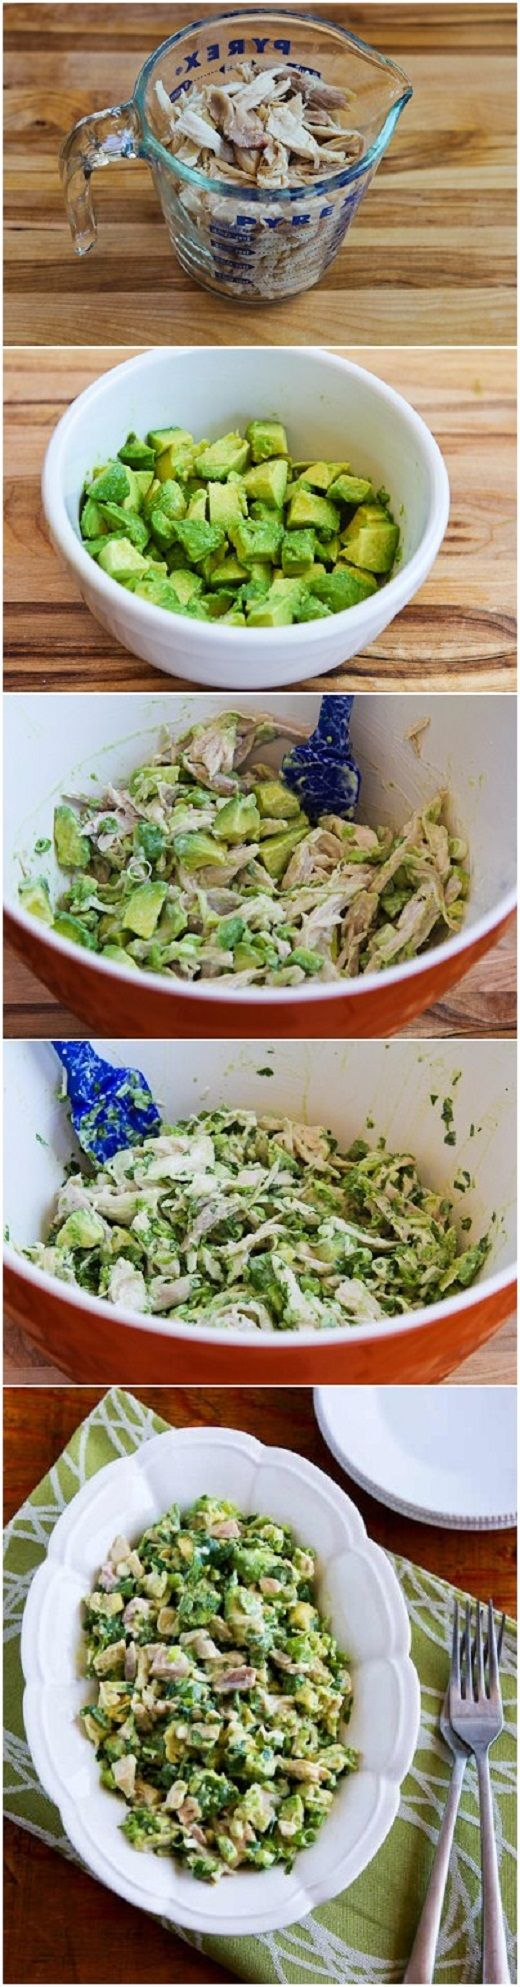 Chicken and Avocado Salad with Lime and Cilantro | Avocado Salads ...